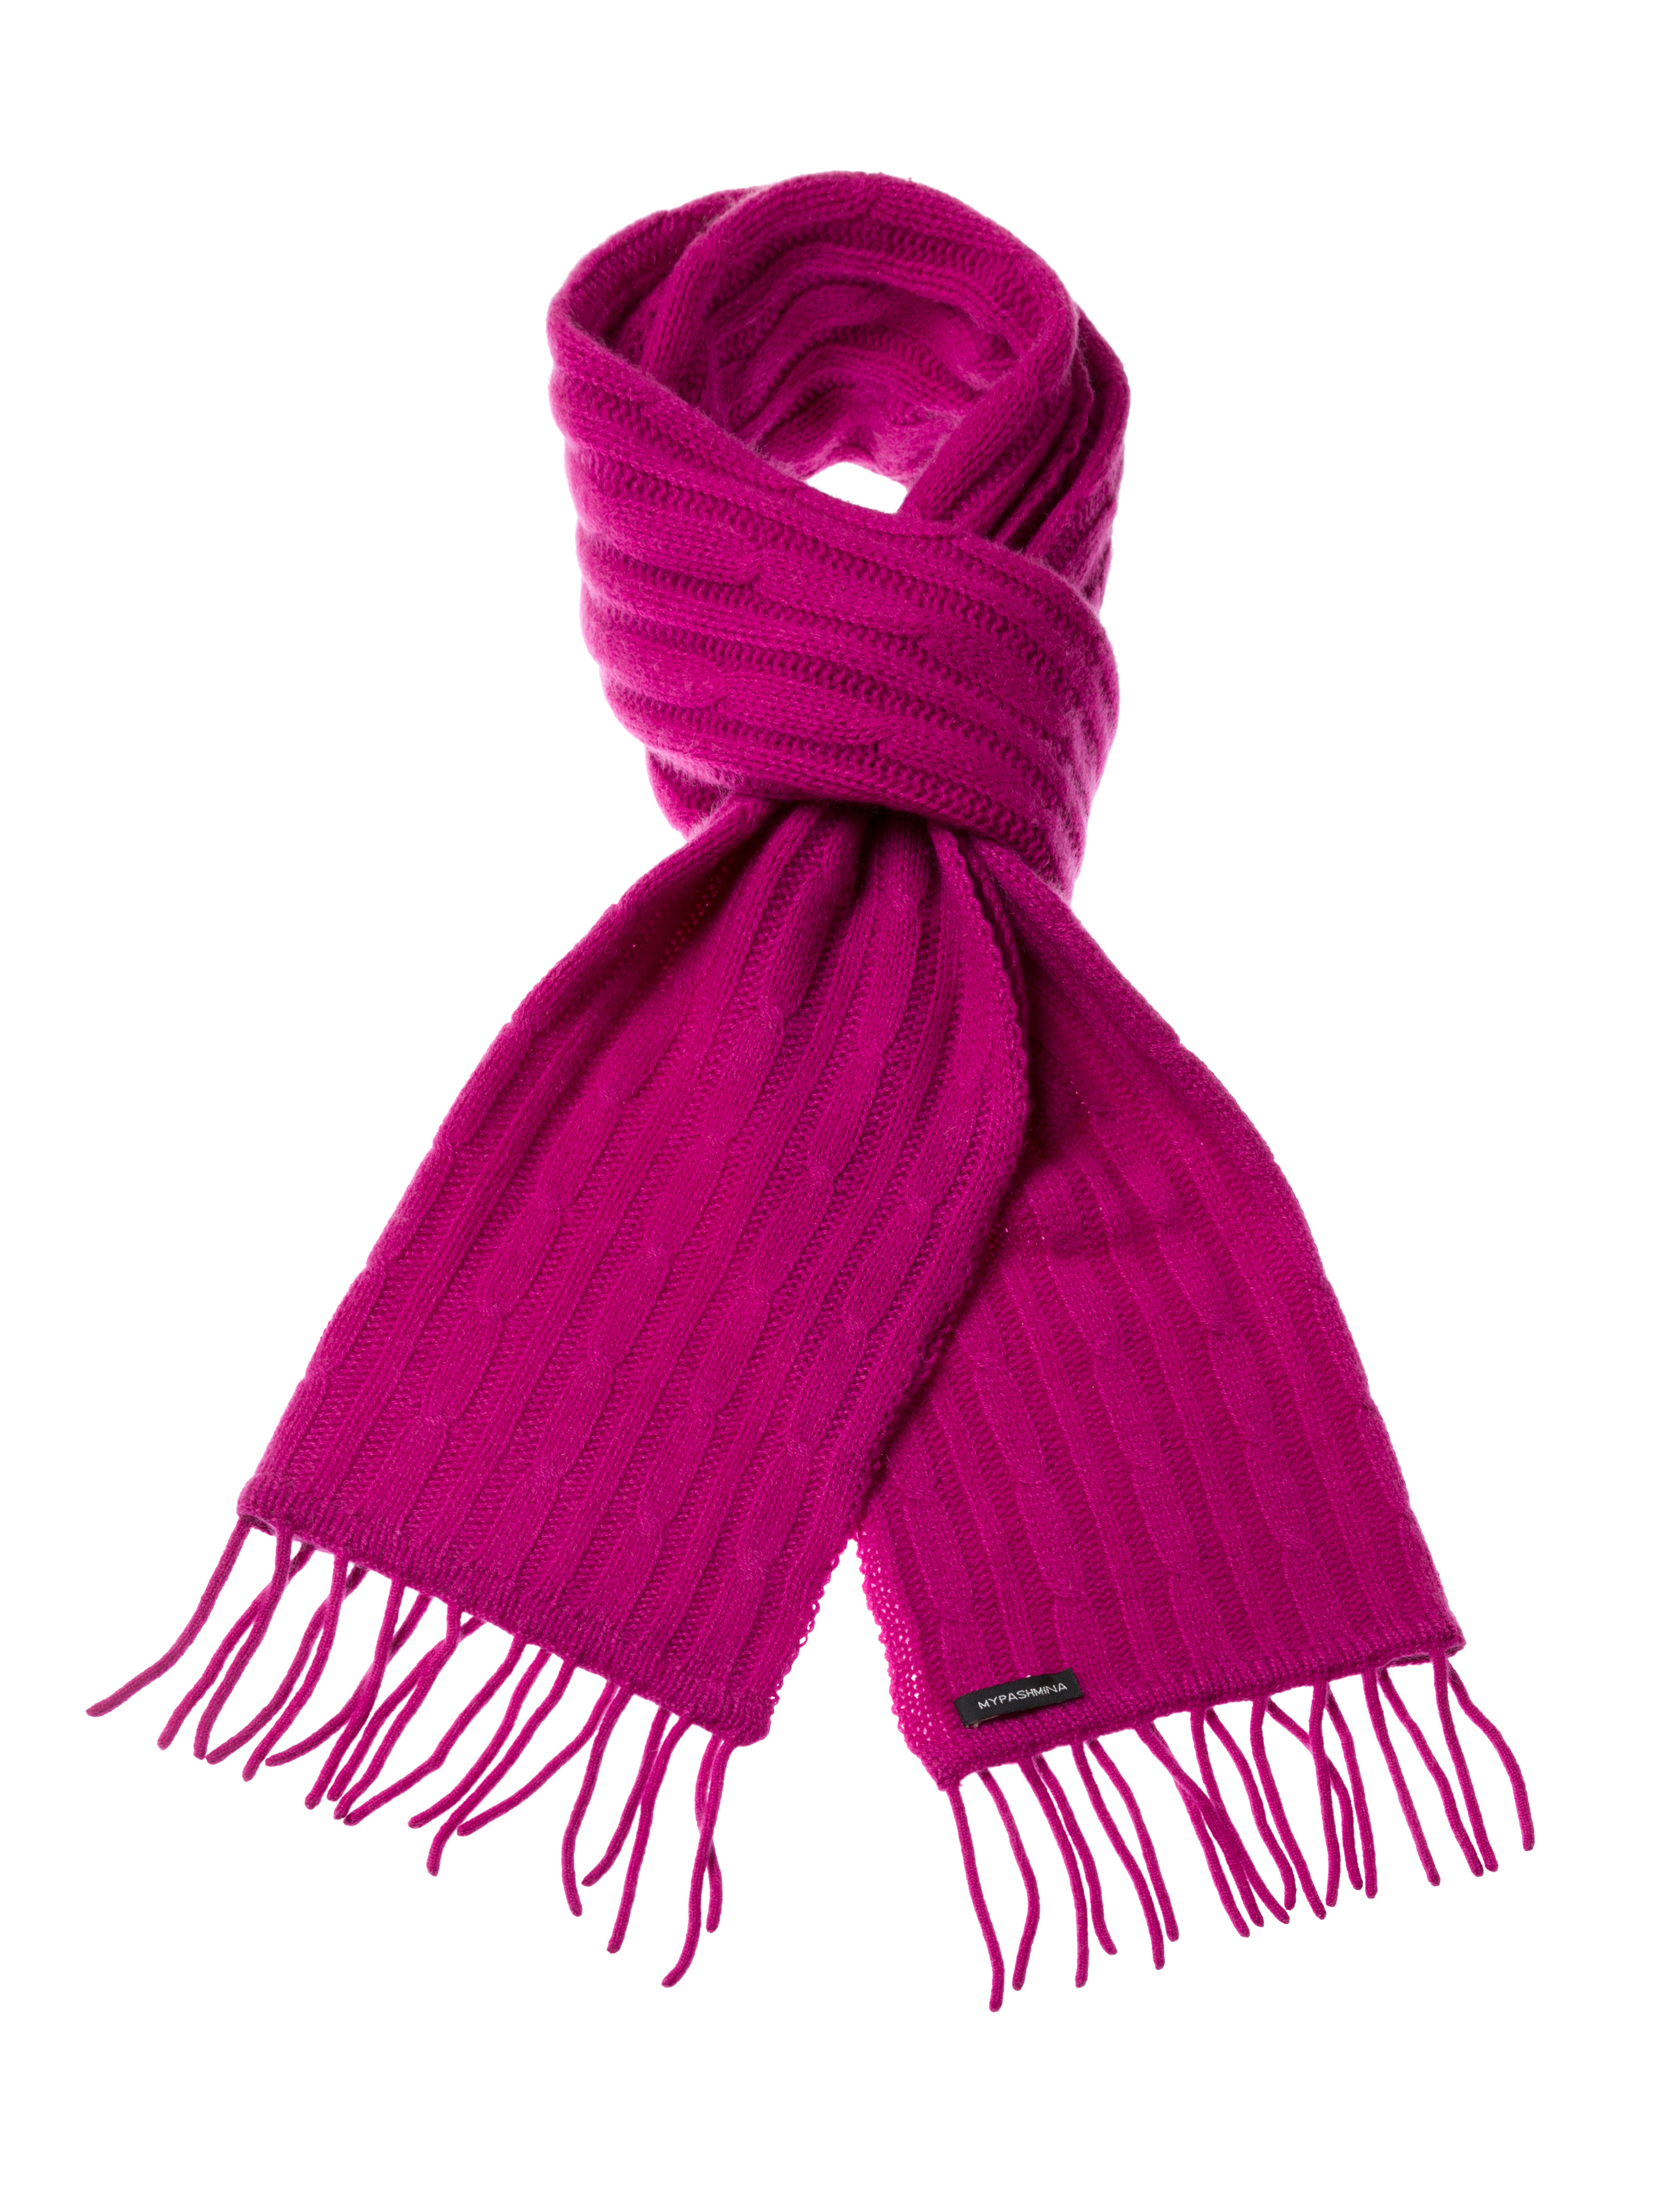 Cable Knit Scarf - 100% Cashmere - 35x180cm - Deep Orchid